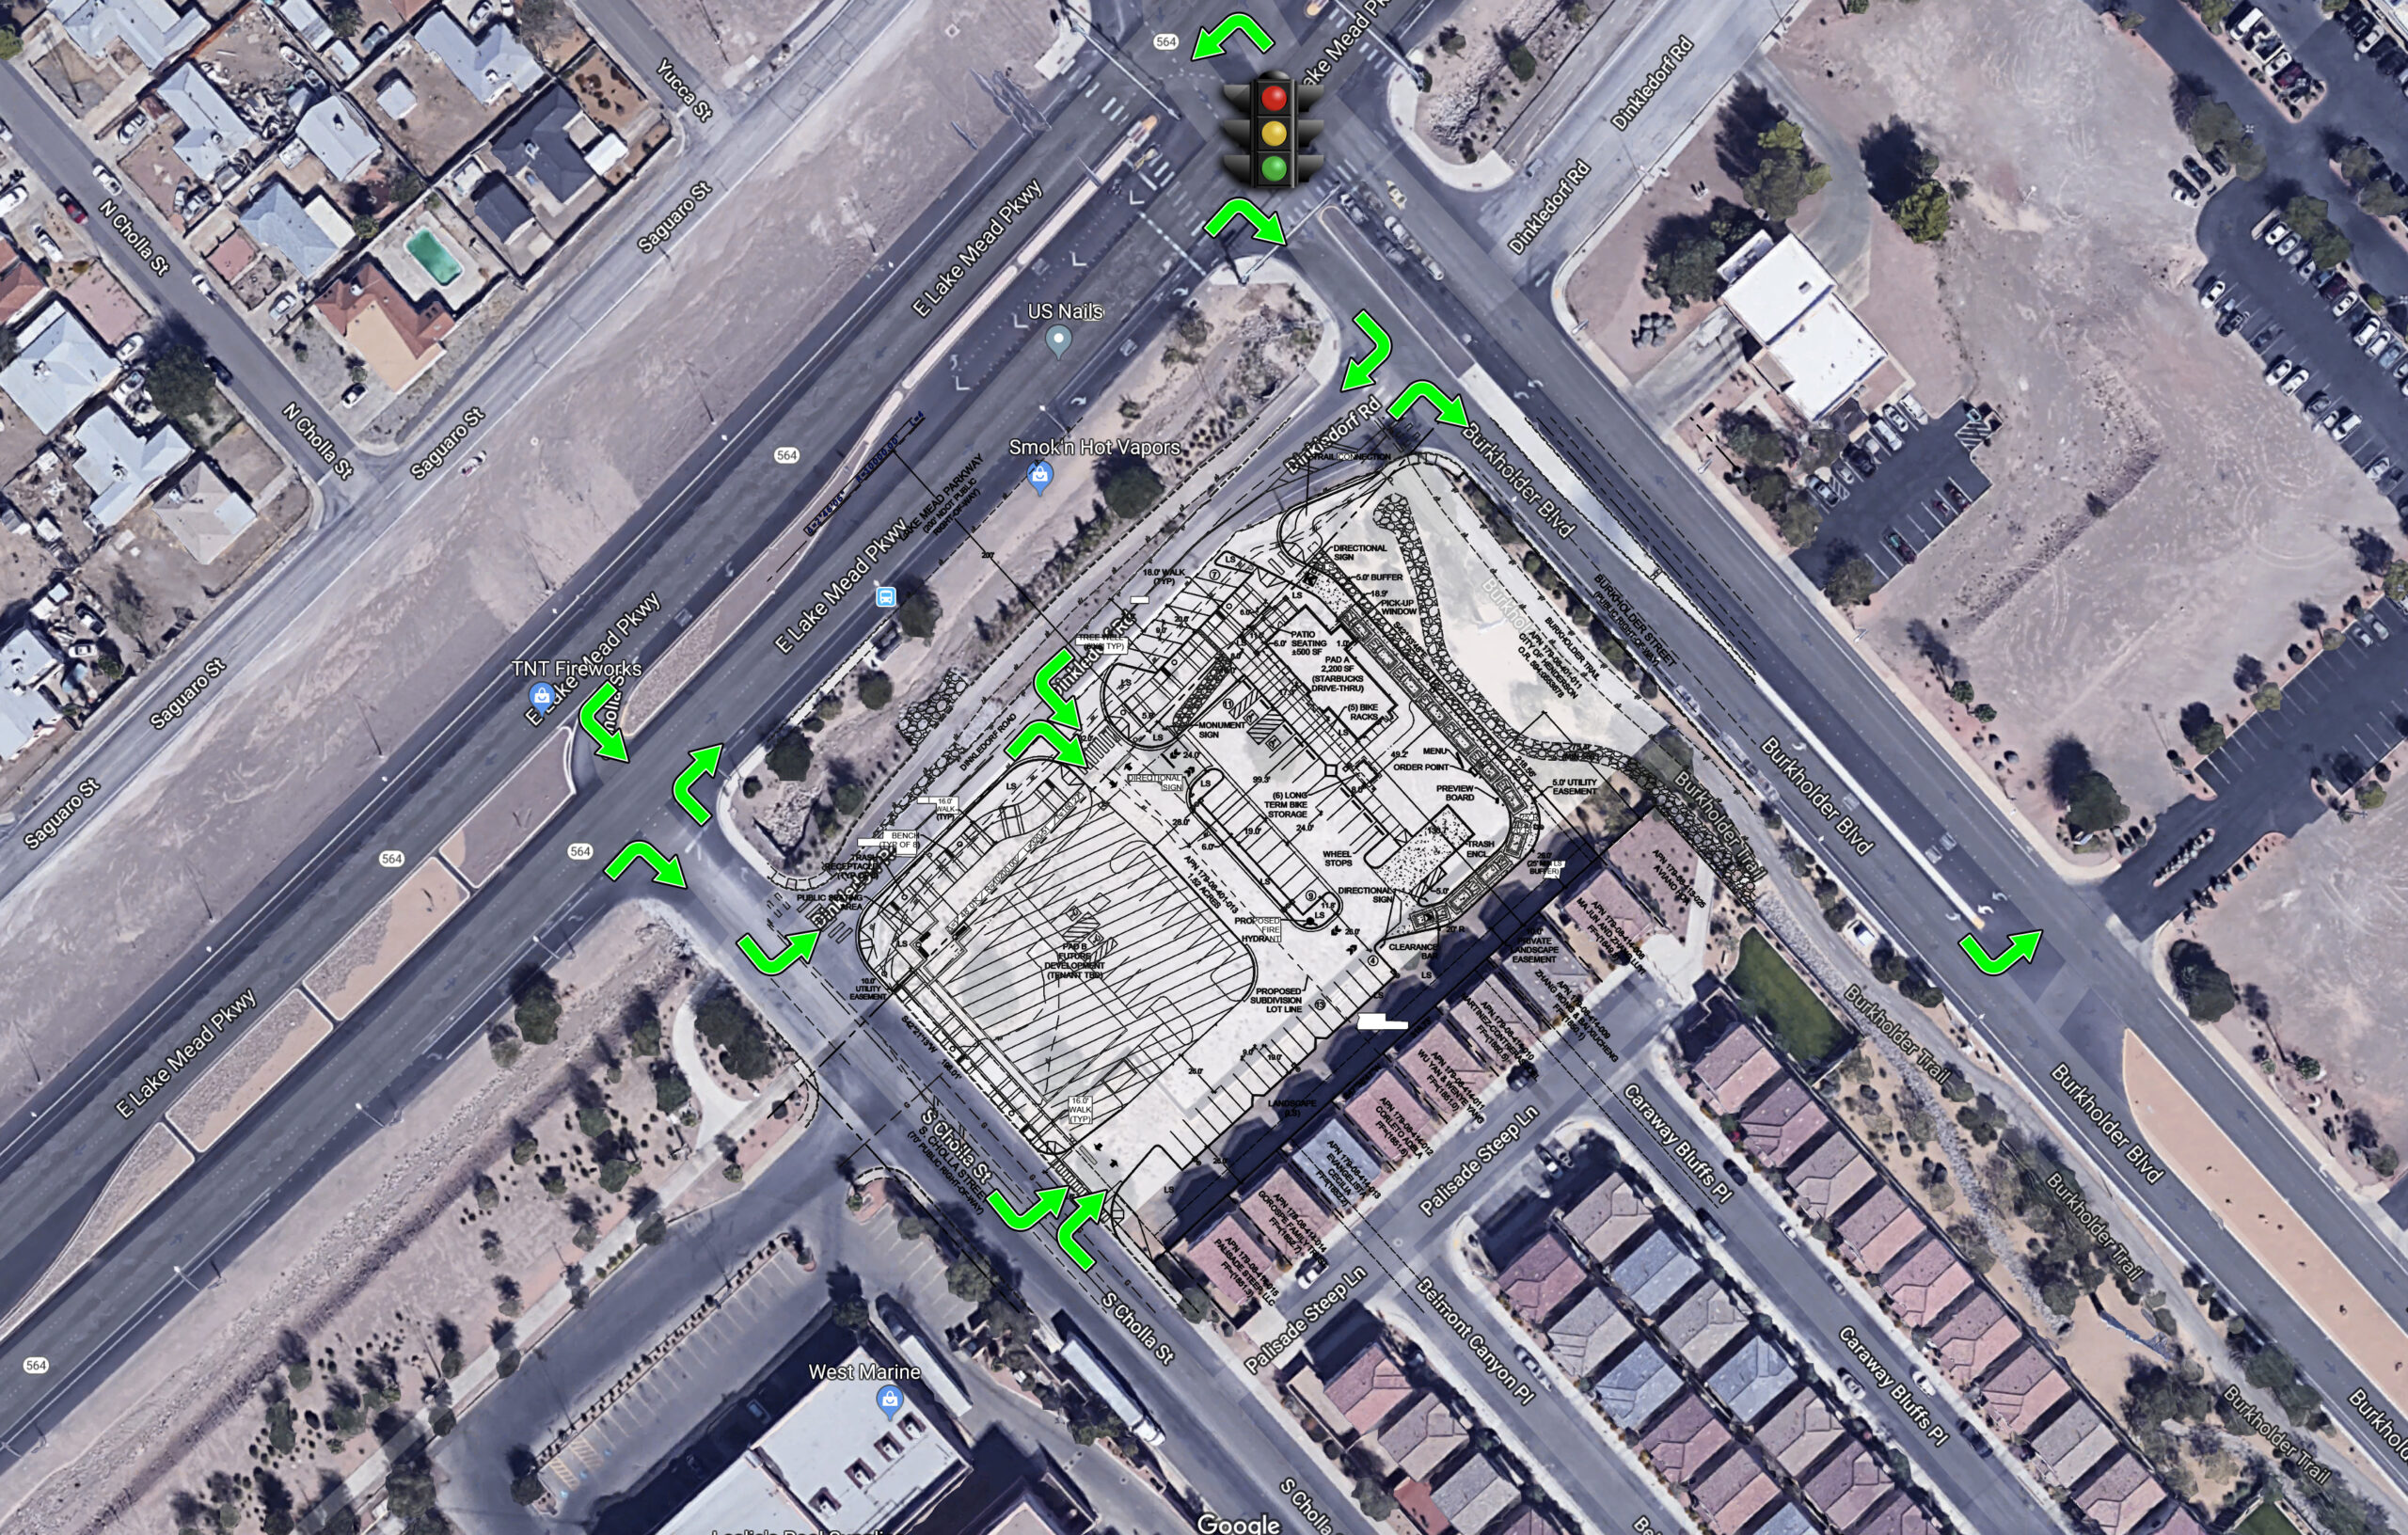 380 Lake Mead Pkwy – SWC Lake Mead Pkwy & Burkholder